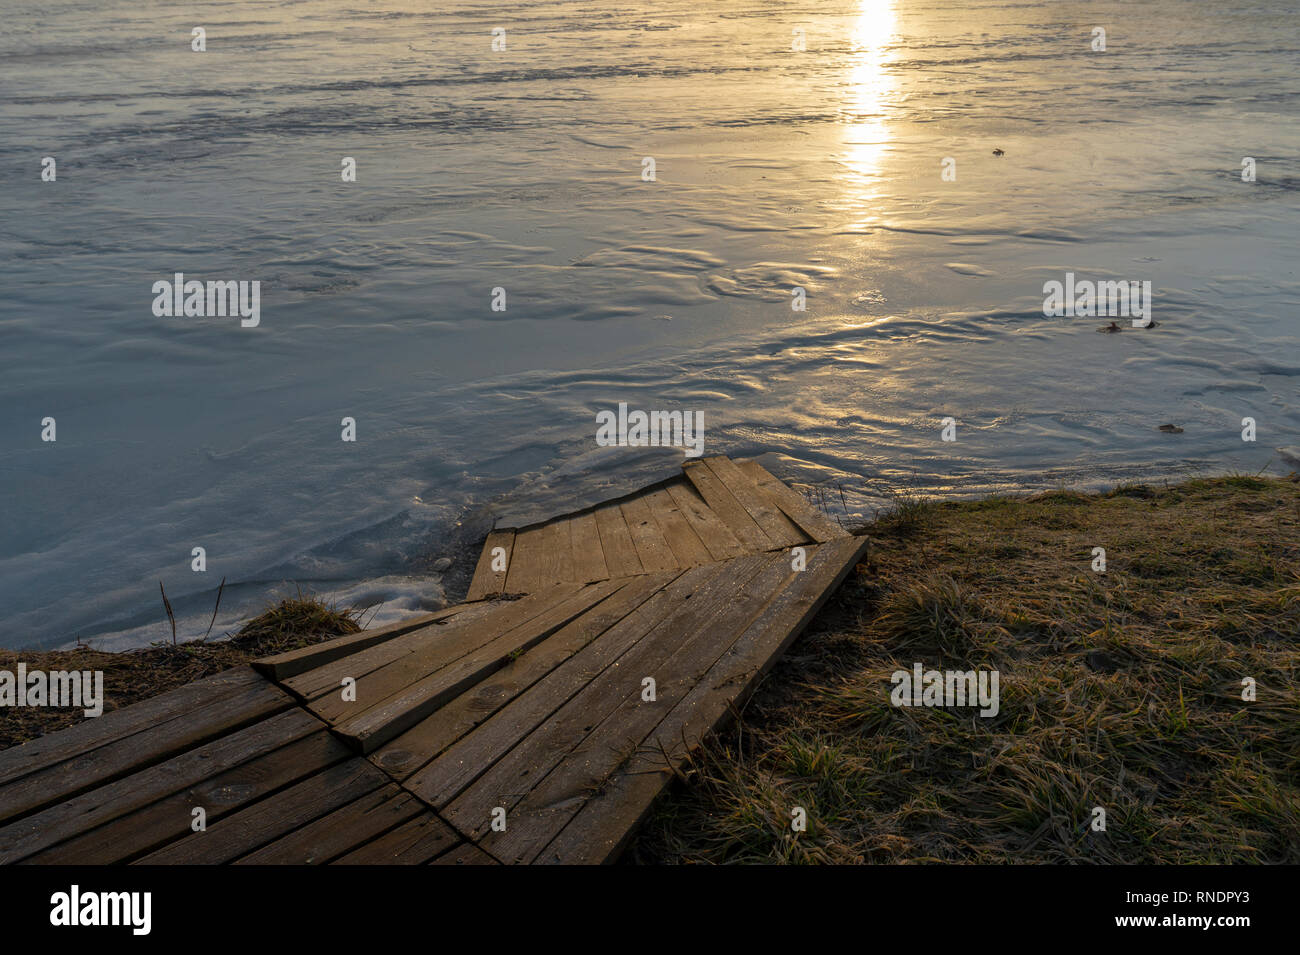 Boardwalk at the edge of a lake at sunset with reflection of the sun on the water and a thin layer of winter ice on the surface in a low angle view - Stock Image